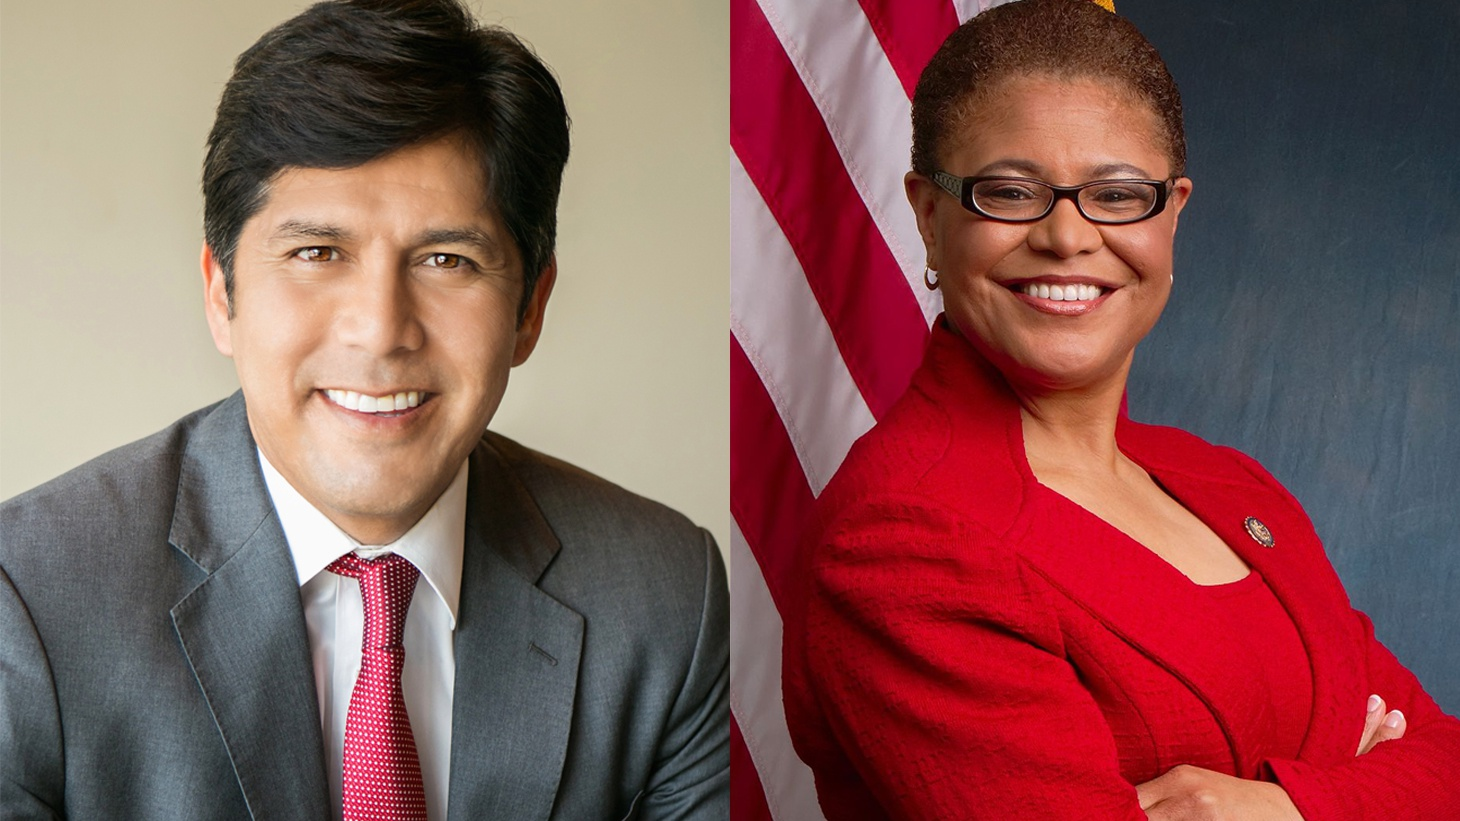 Former LA City Council member Jan Perry expects Kevin de León and Karen Bass to be the leading candidates in the race for LA's next mayor.